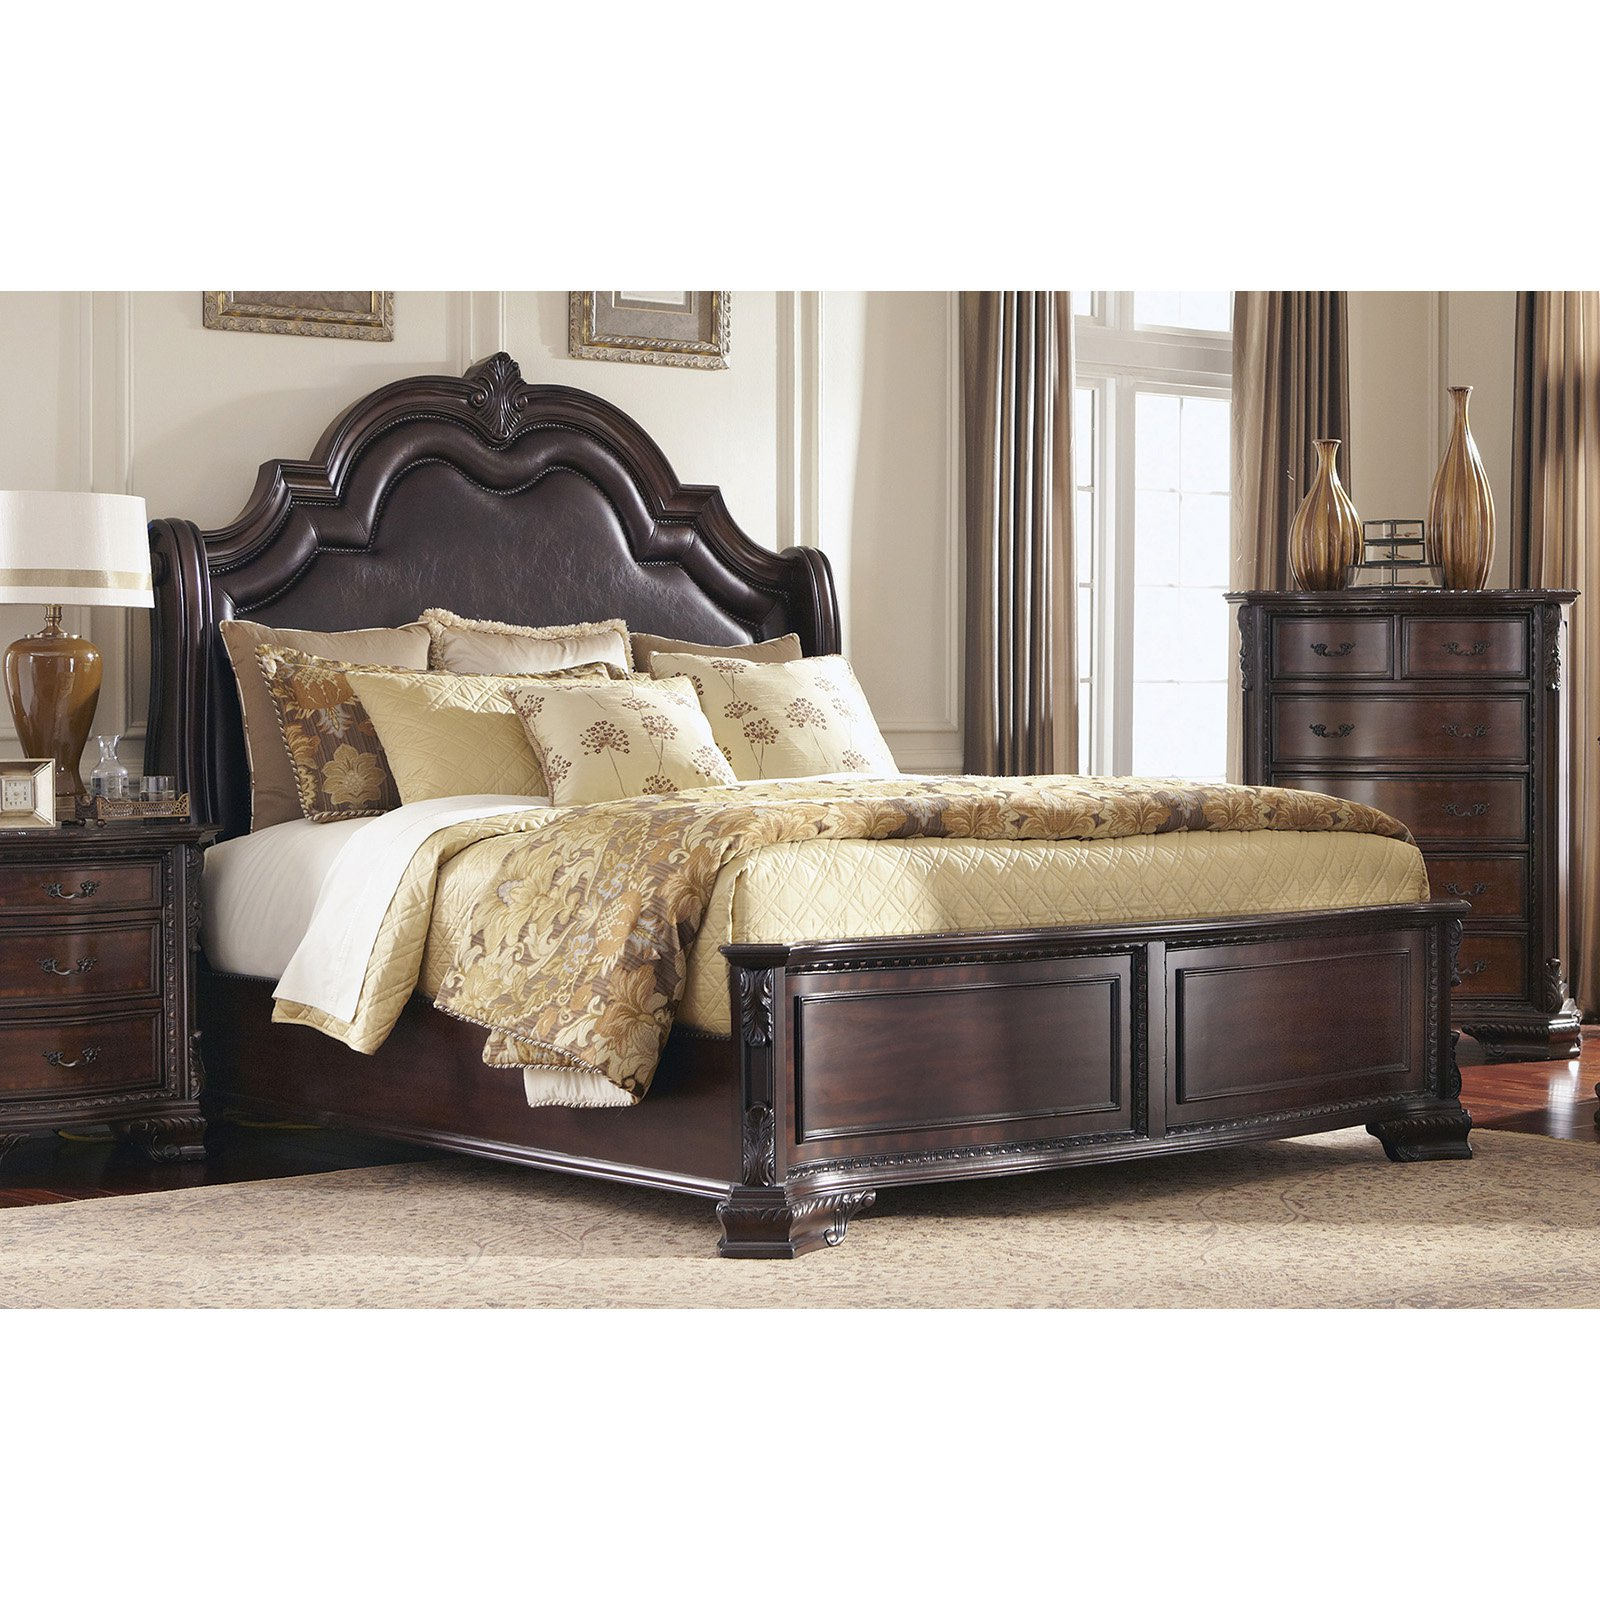 Coaster Furniture Maddison Upholstered Bed